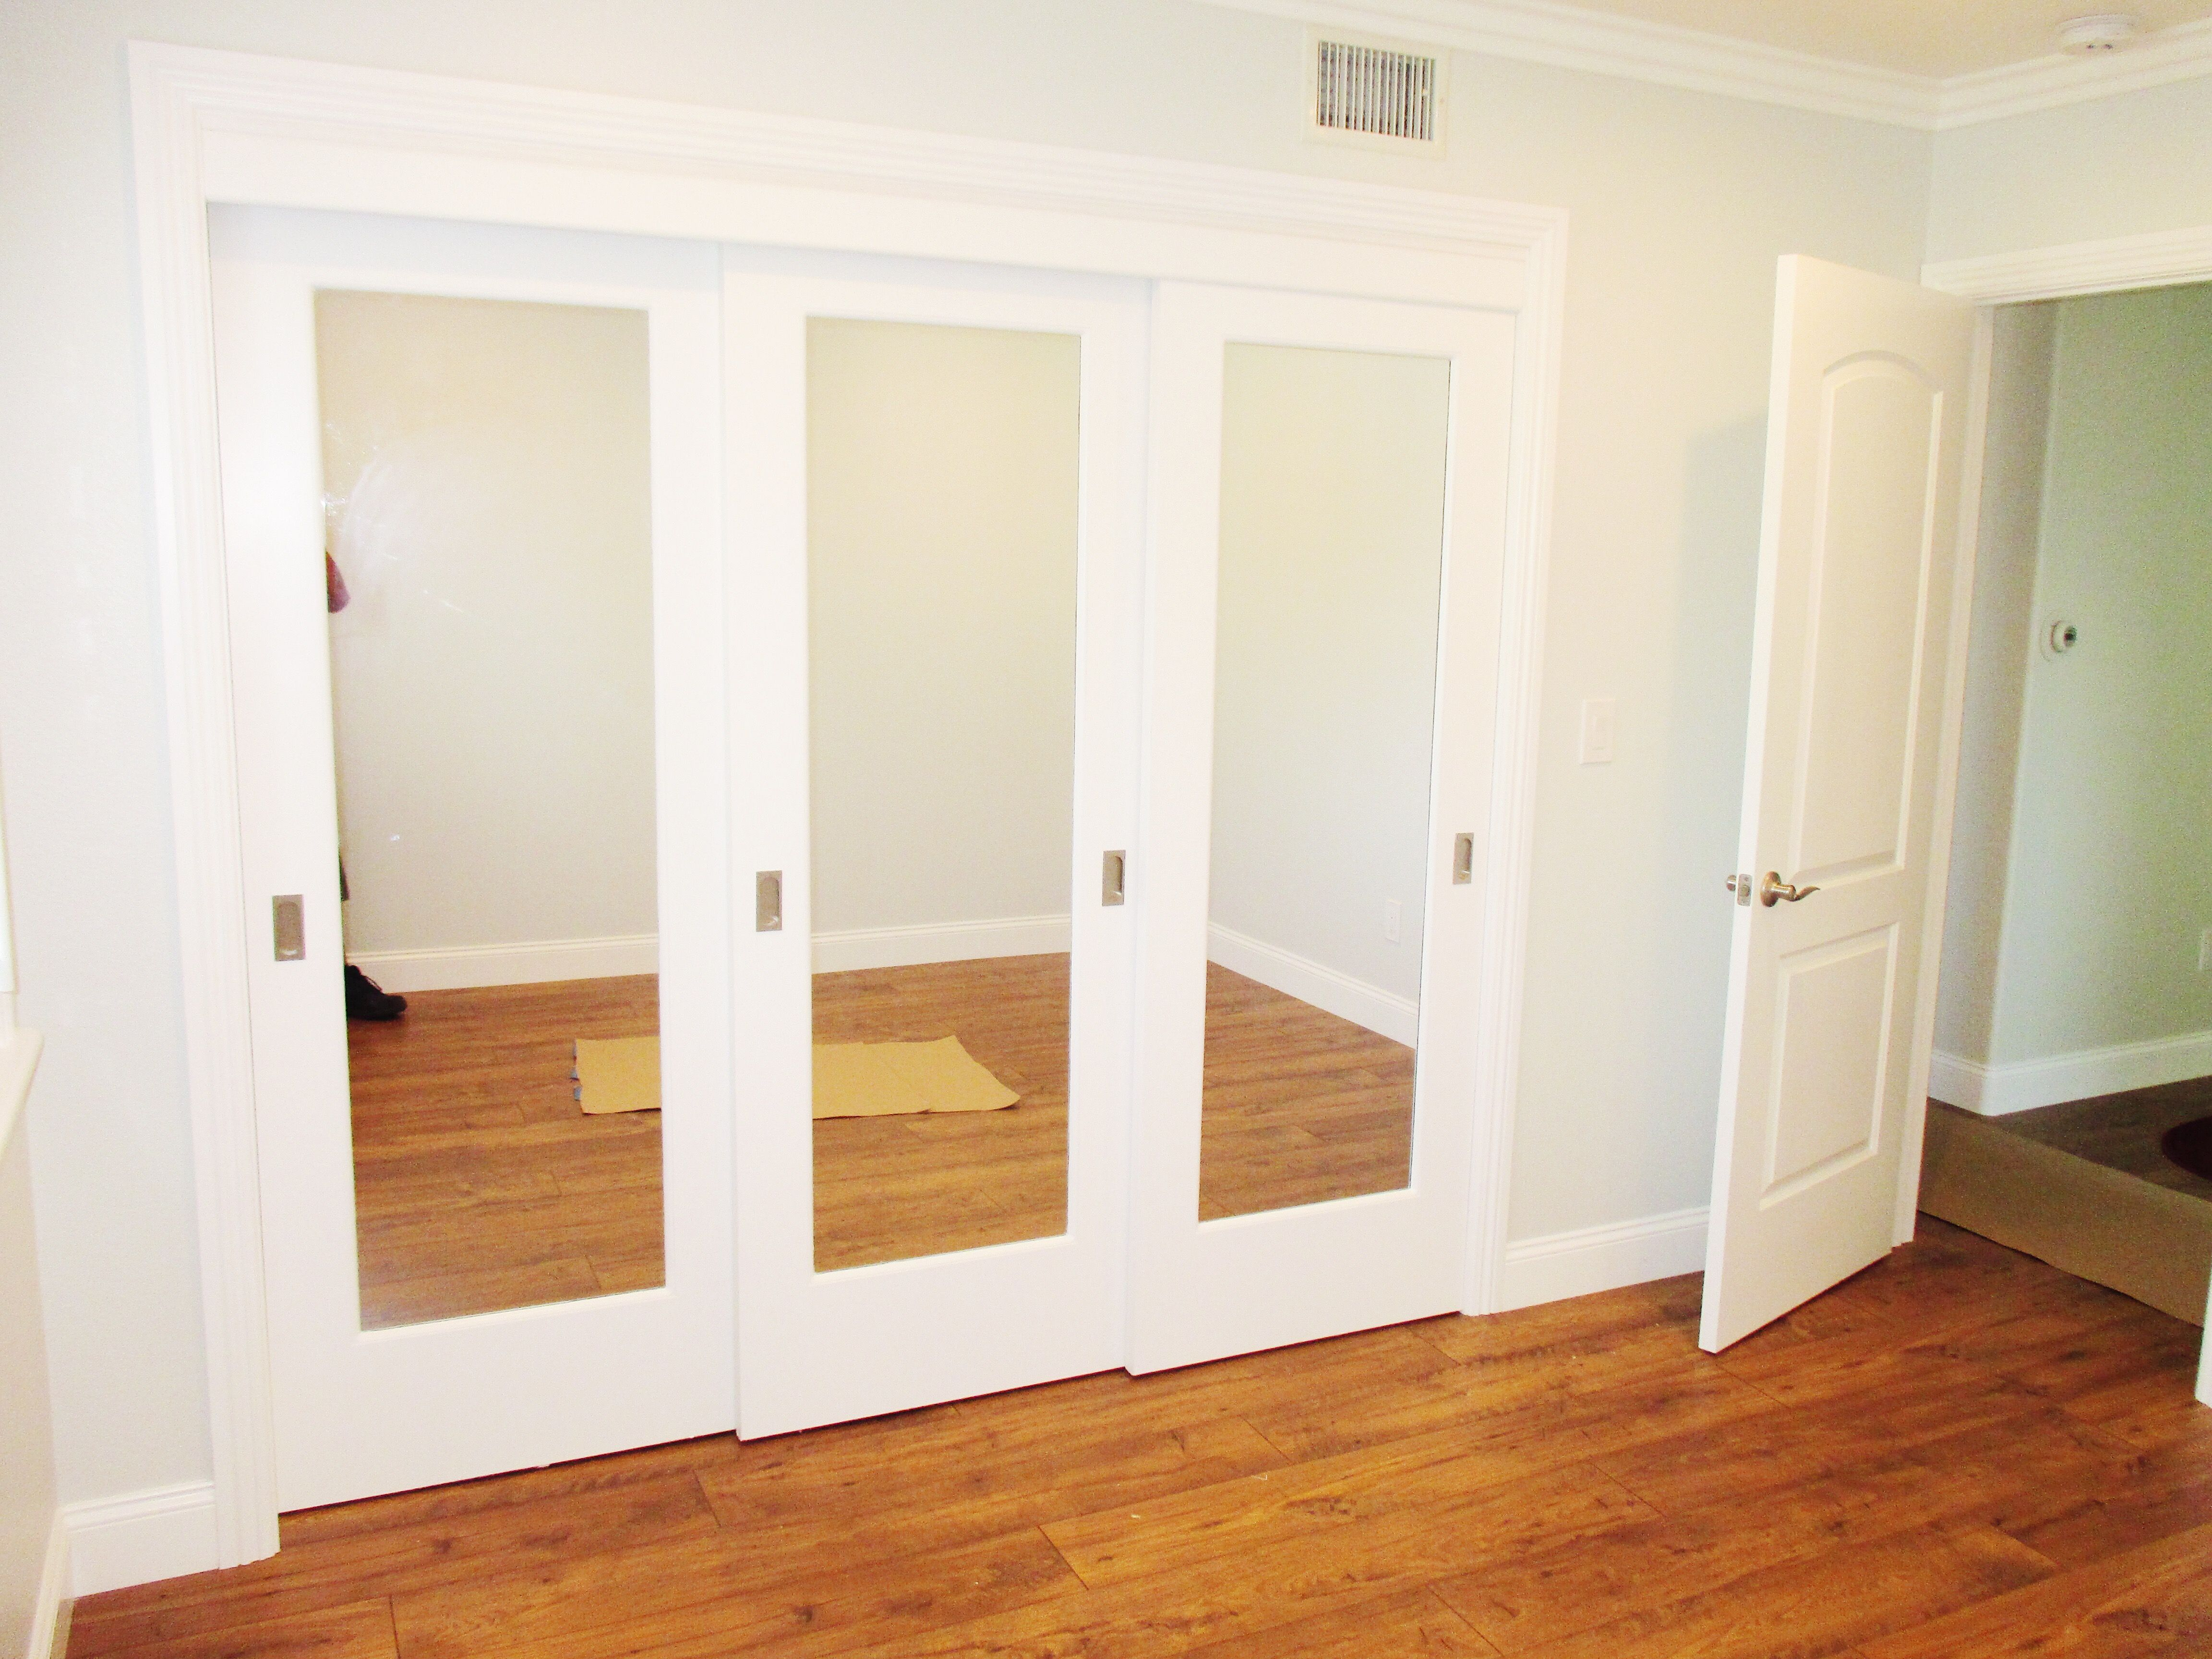 Do You Need Some Closet Doors But Want To Leave Your Floor Trackless Top Hung Doors Like These White 3 Pane Mirror Closet Doors Closet Doors Closet Apartment